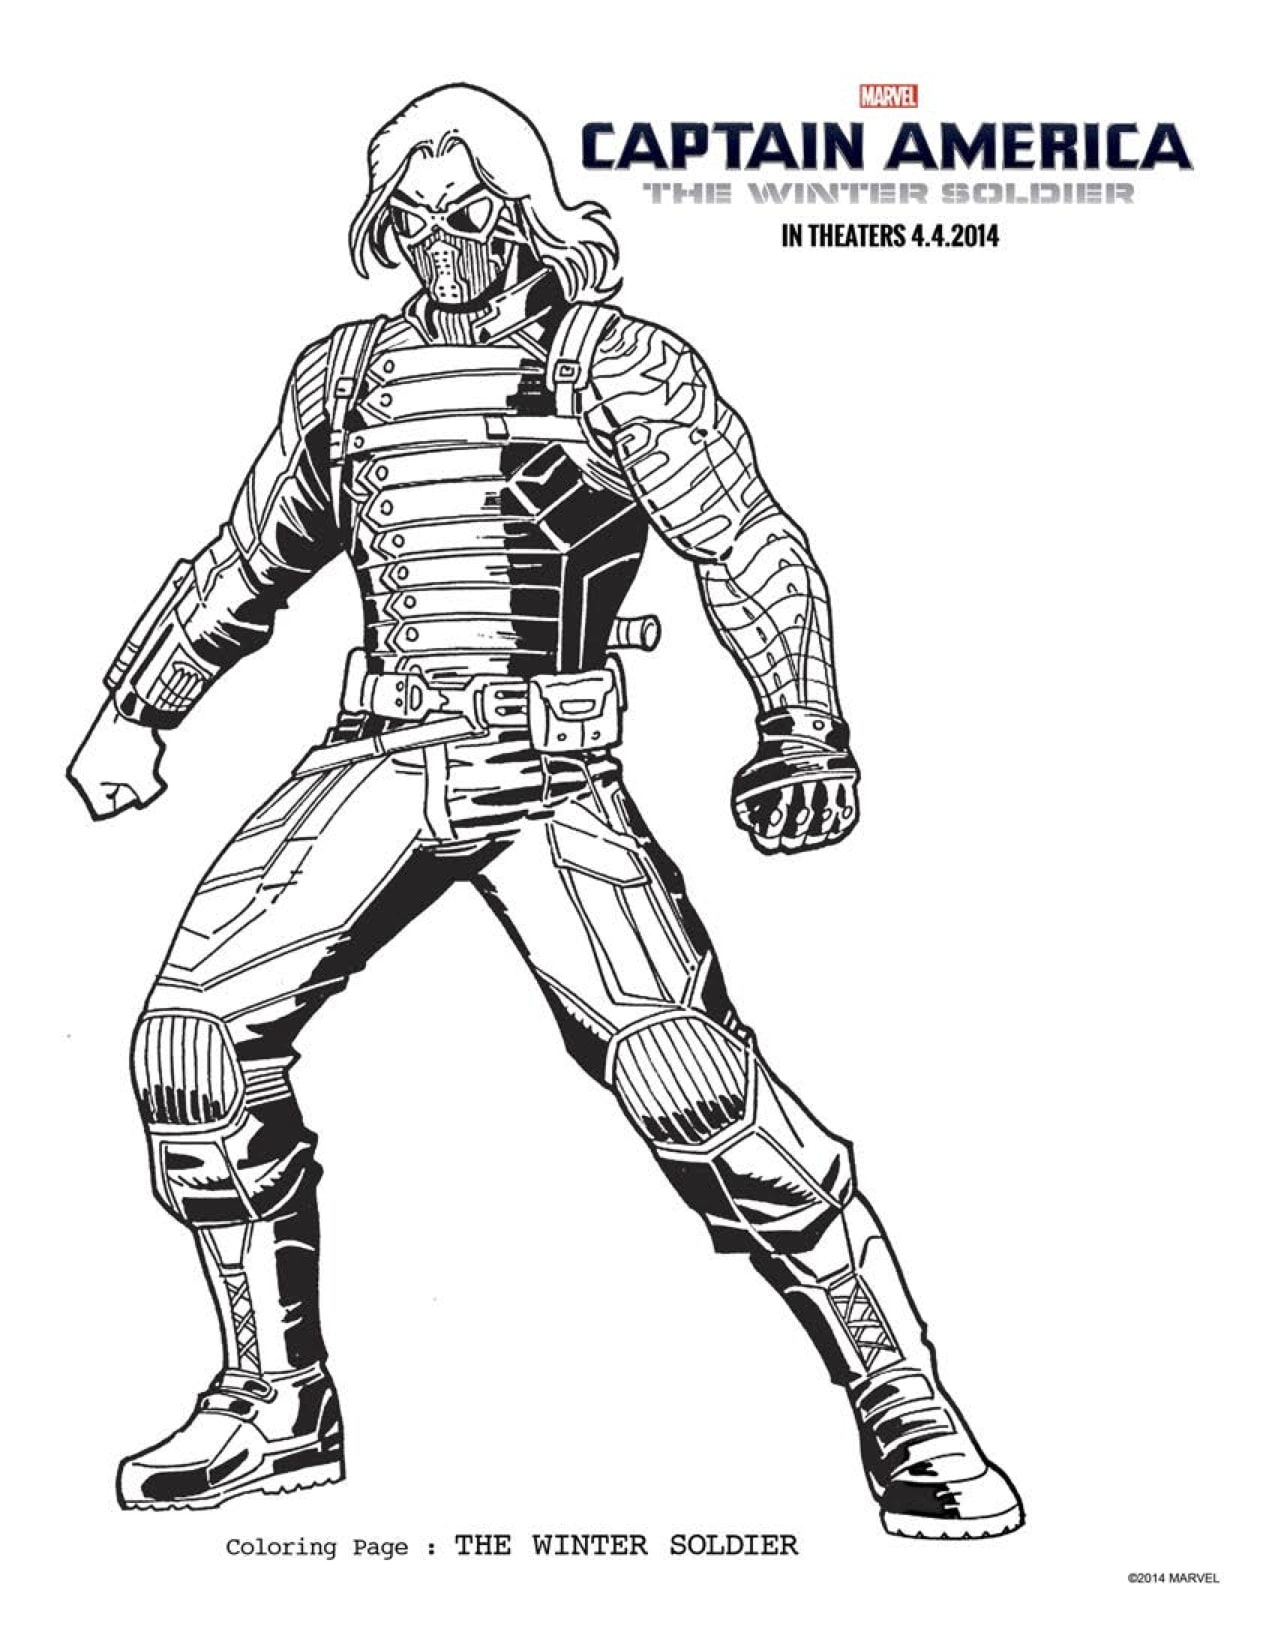 FREE Captain America 2 Coloring Pages Download Printables Here